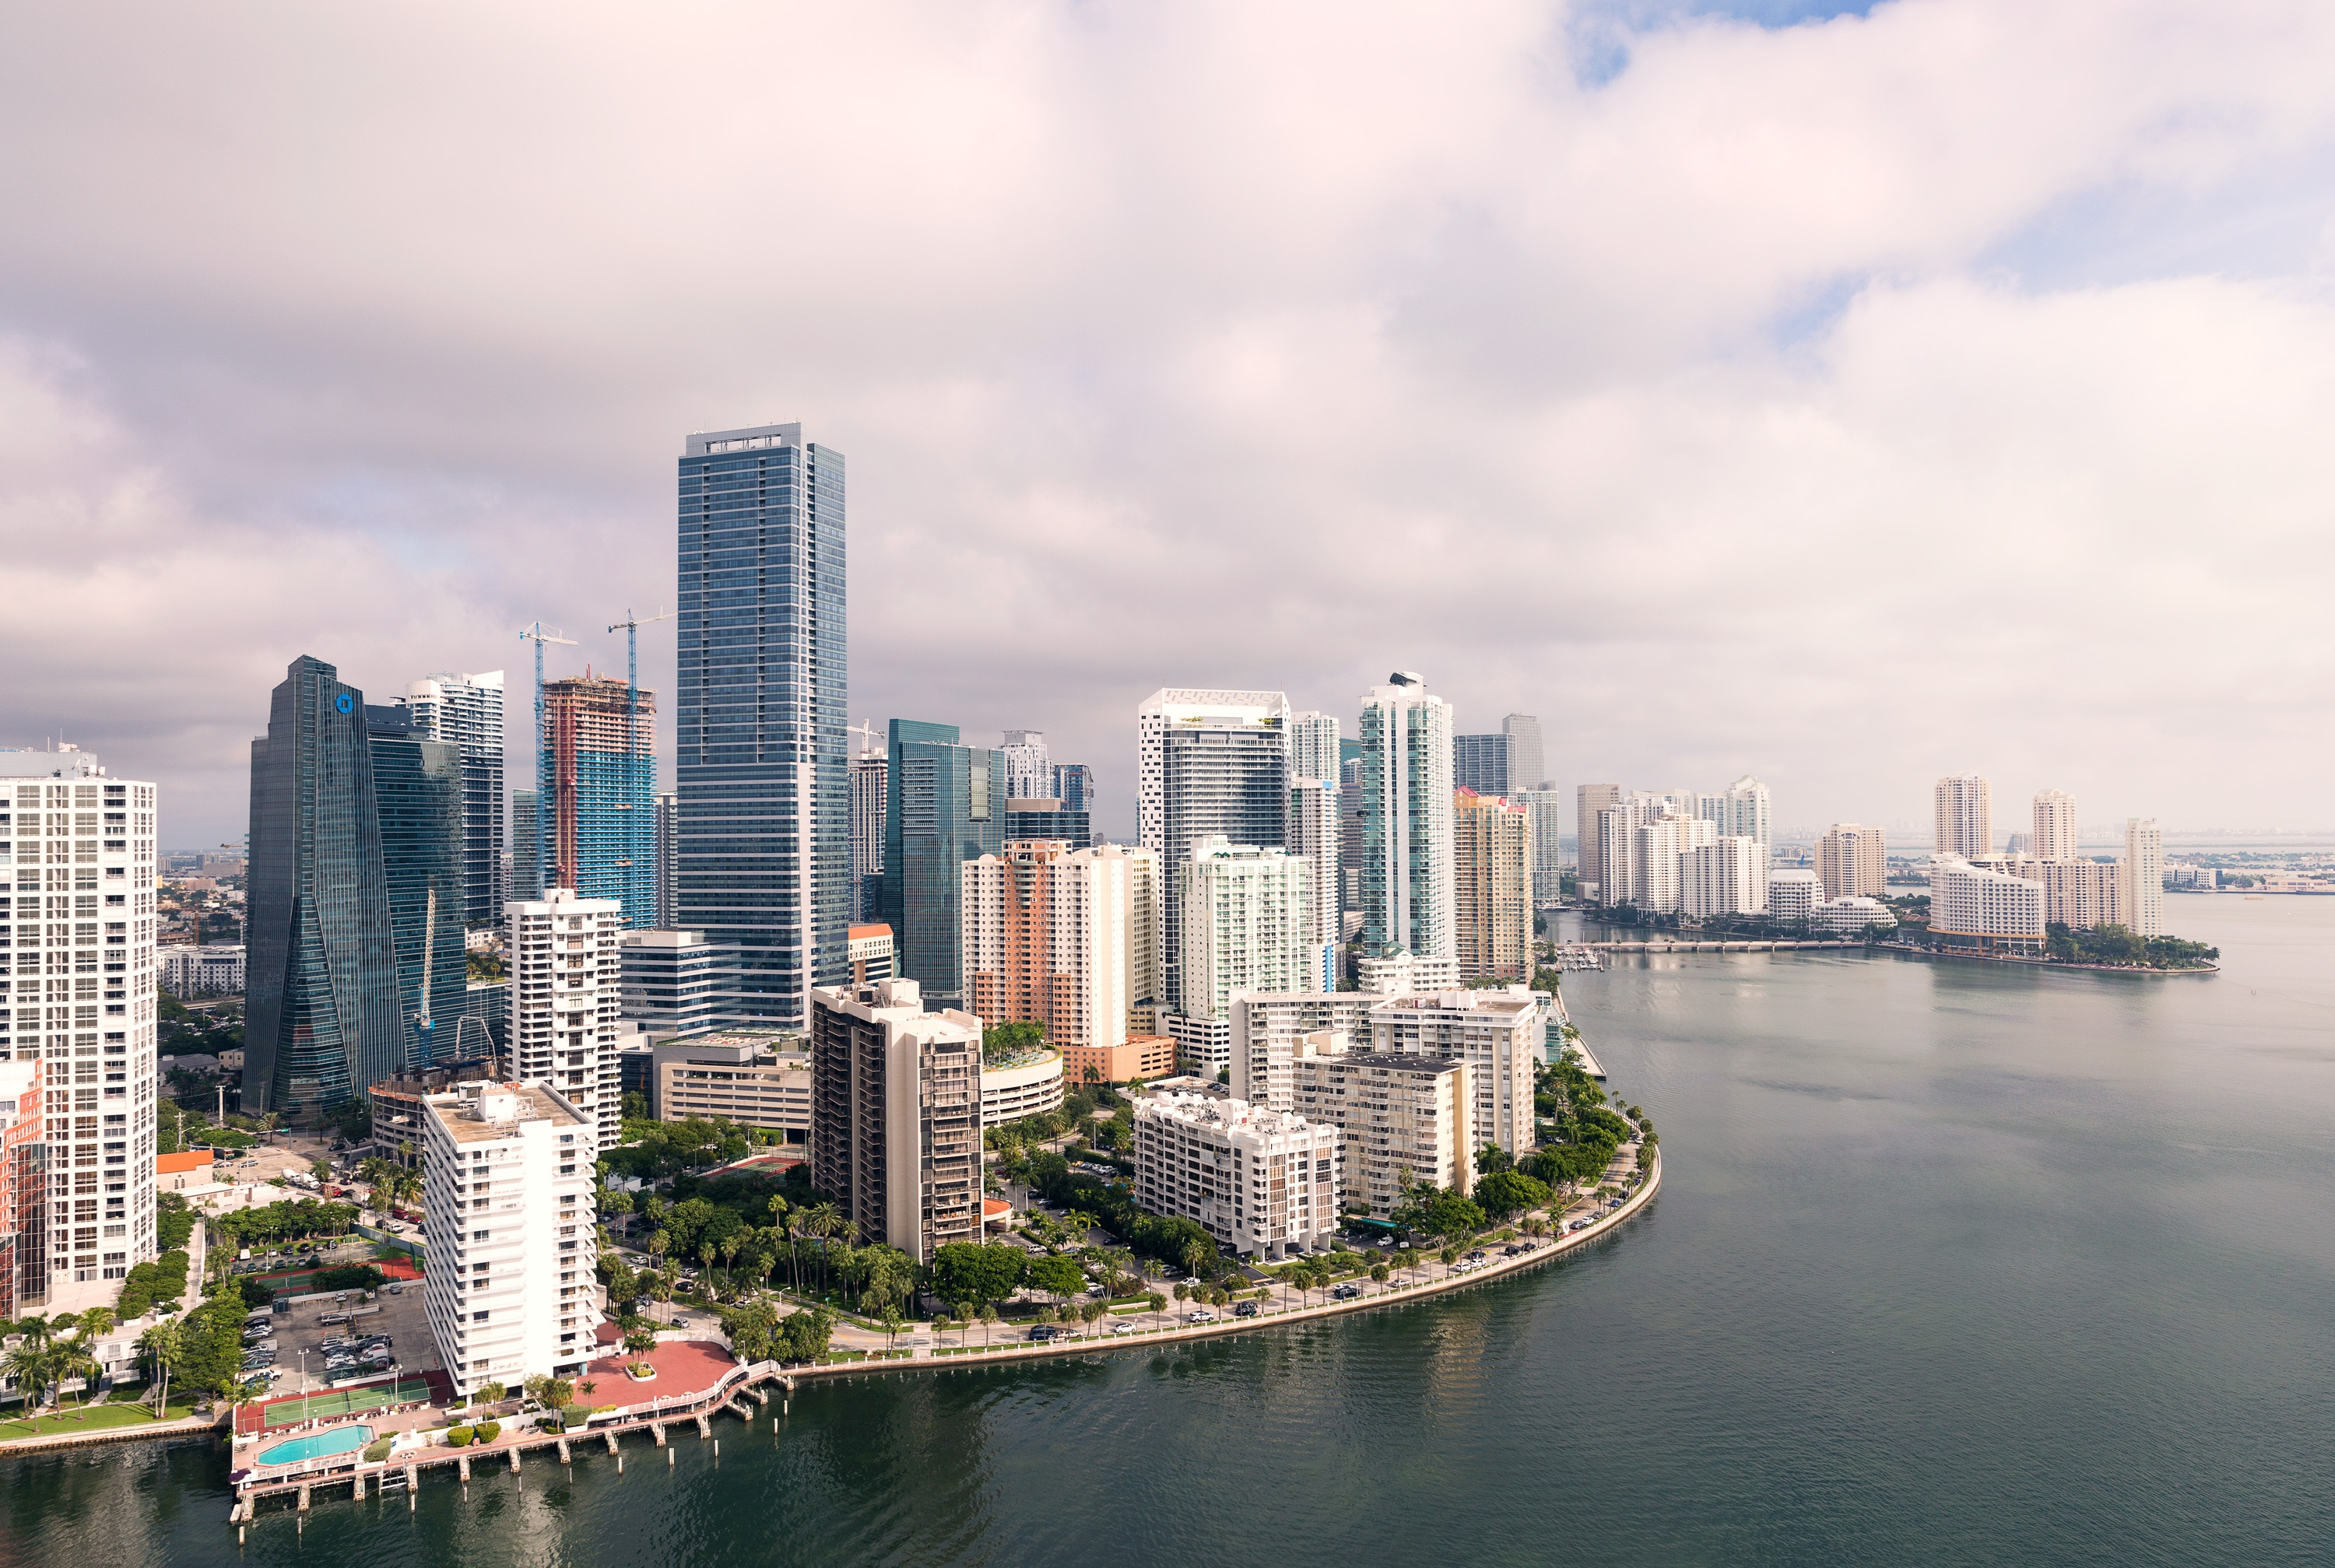 There are many interesting facts about Miami itself.